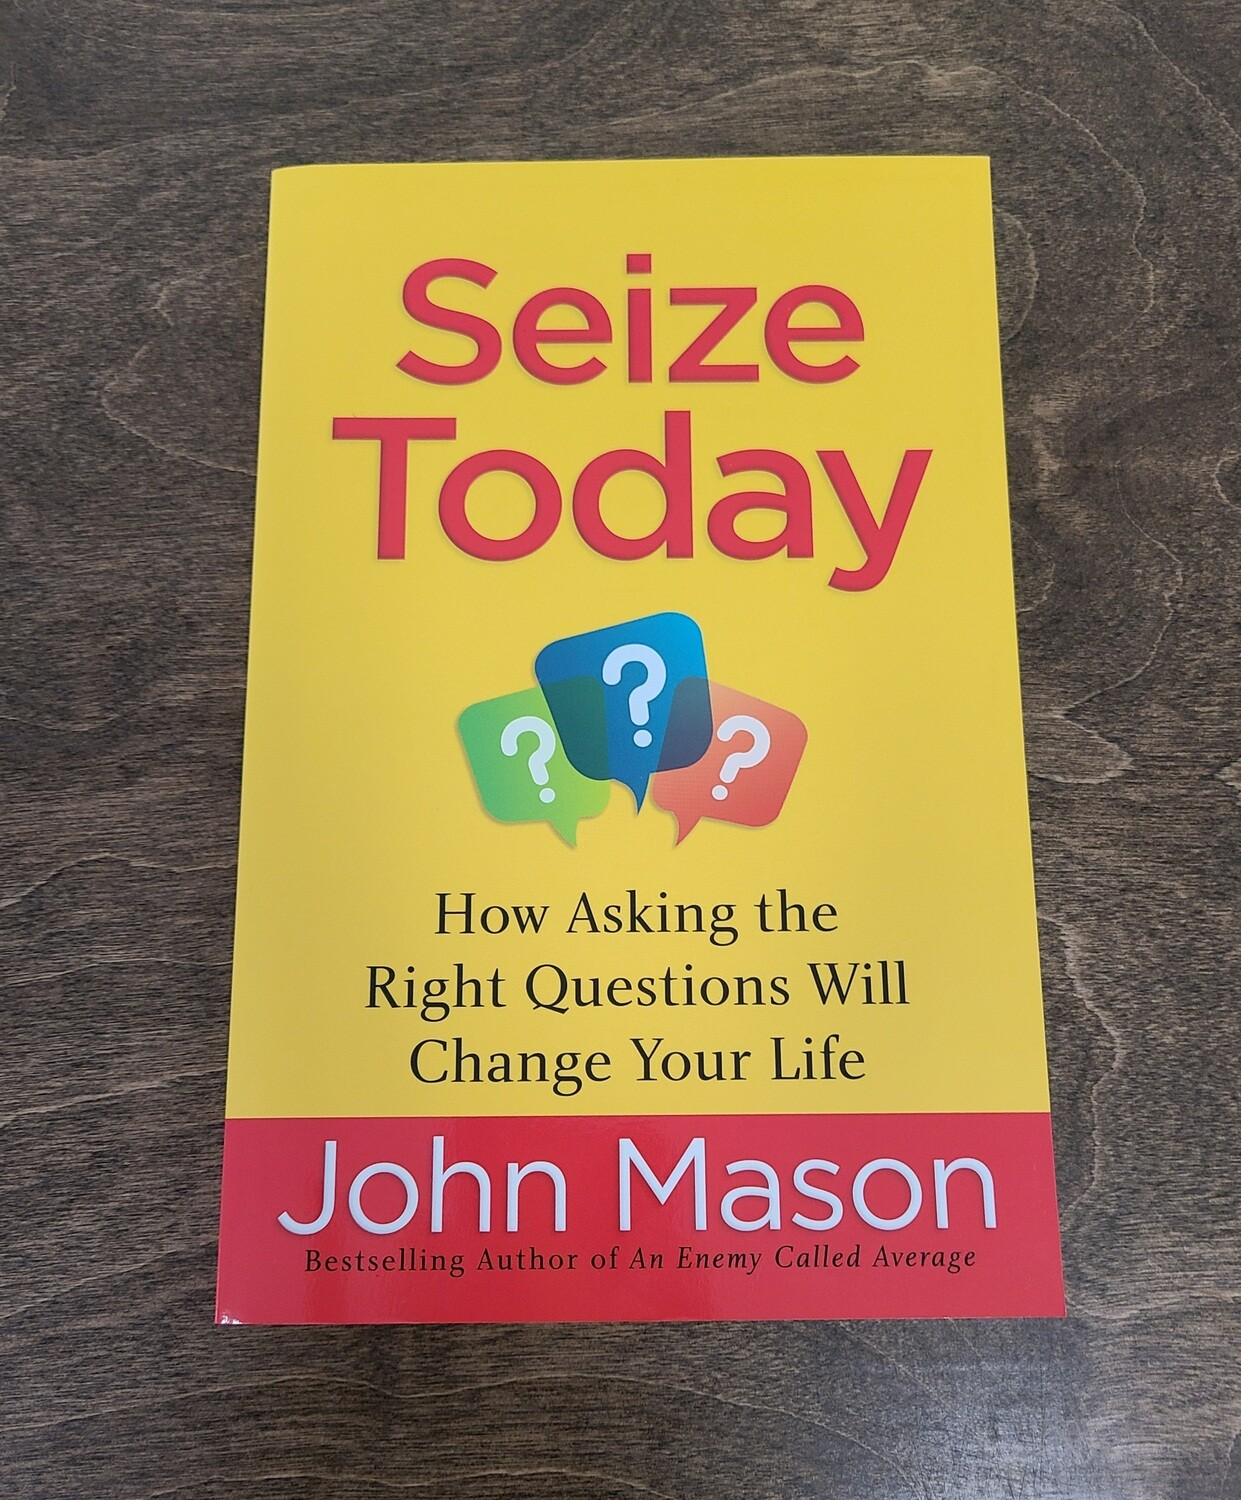 Seize Today: How Asking the Right Questions Will Change Your Life by John Mason